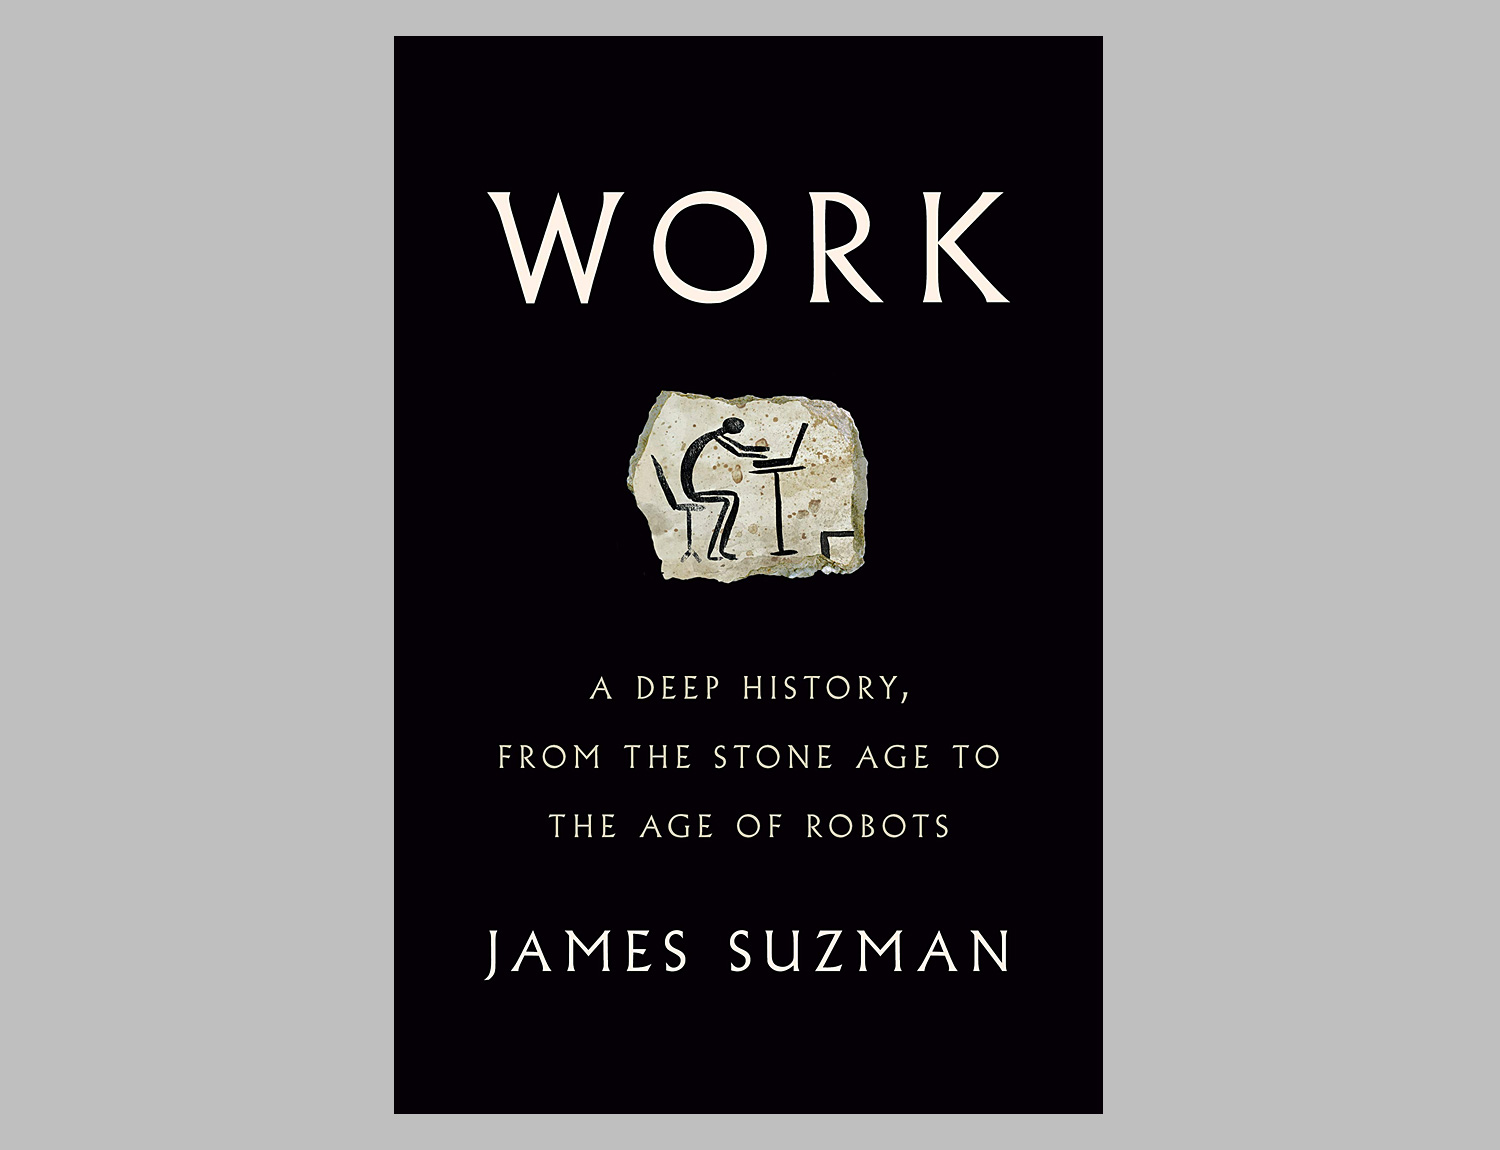 Work: A Deep History, from the Stone Age to the Age of Robots at werd.com